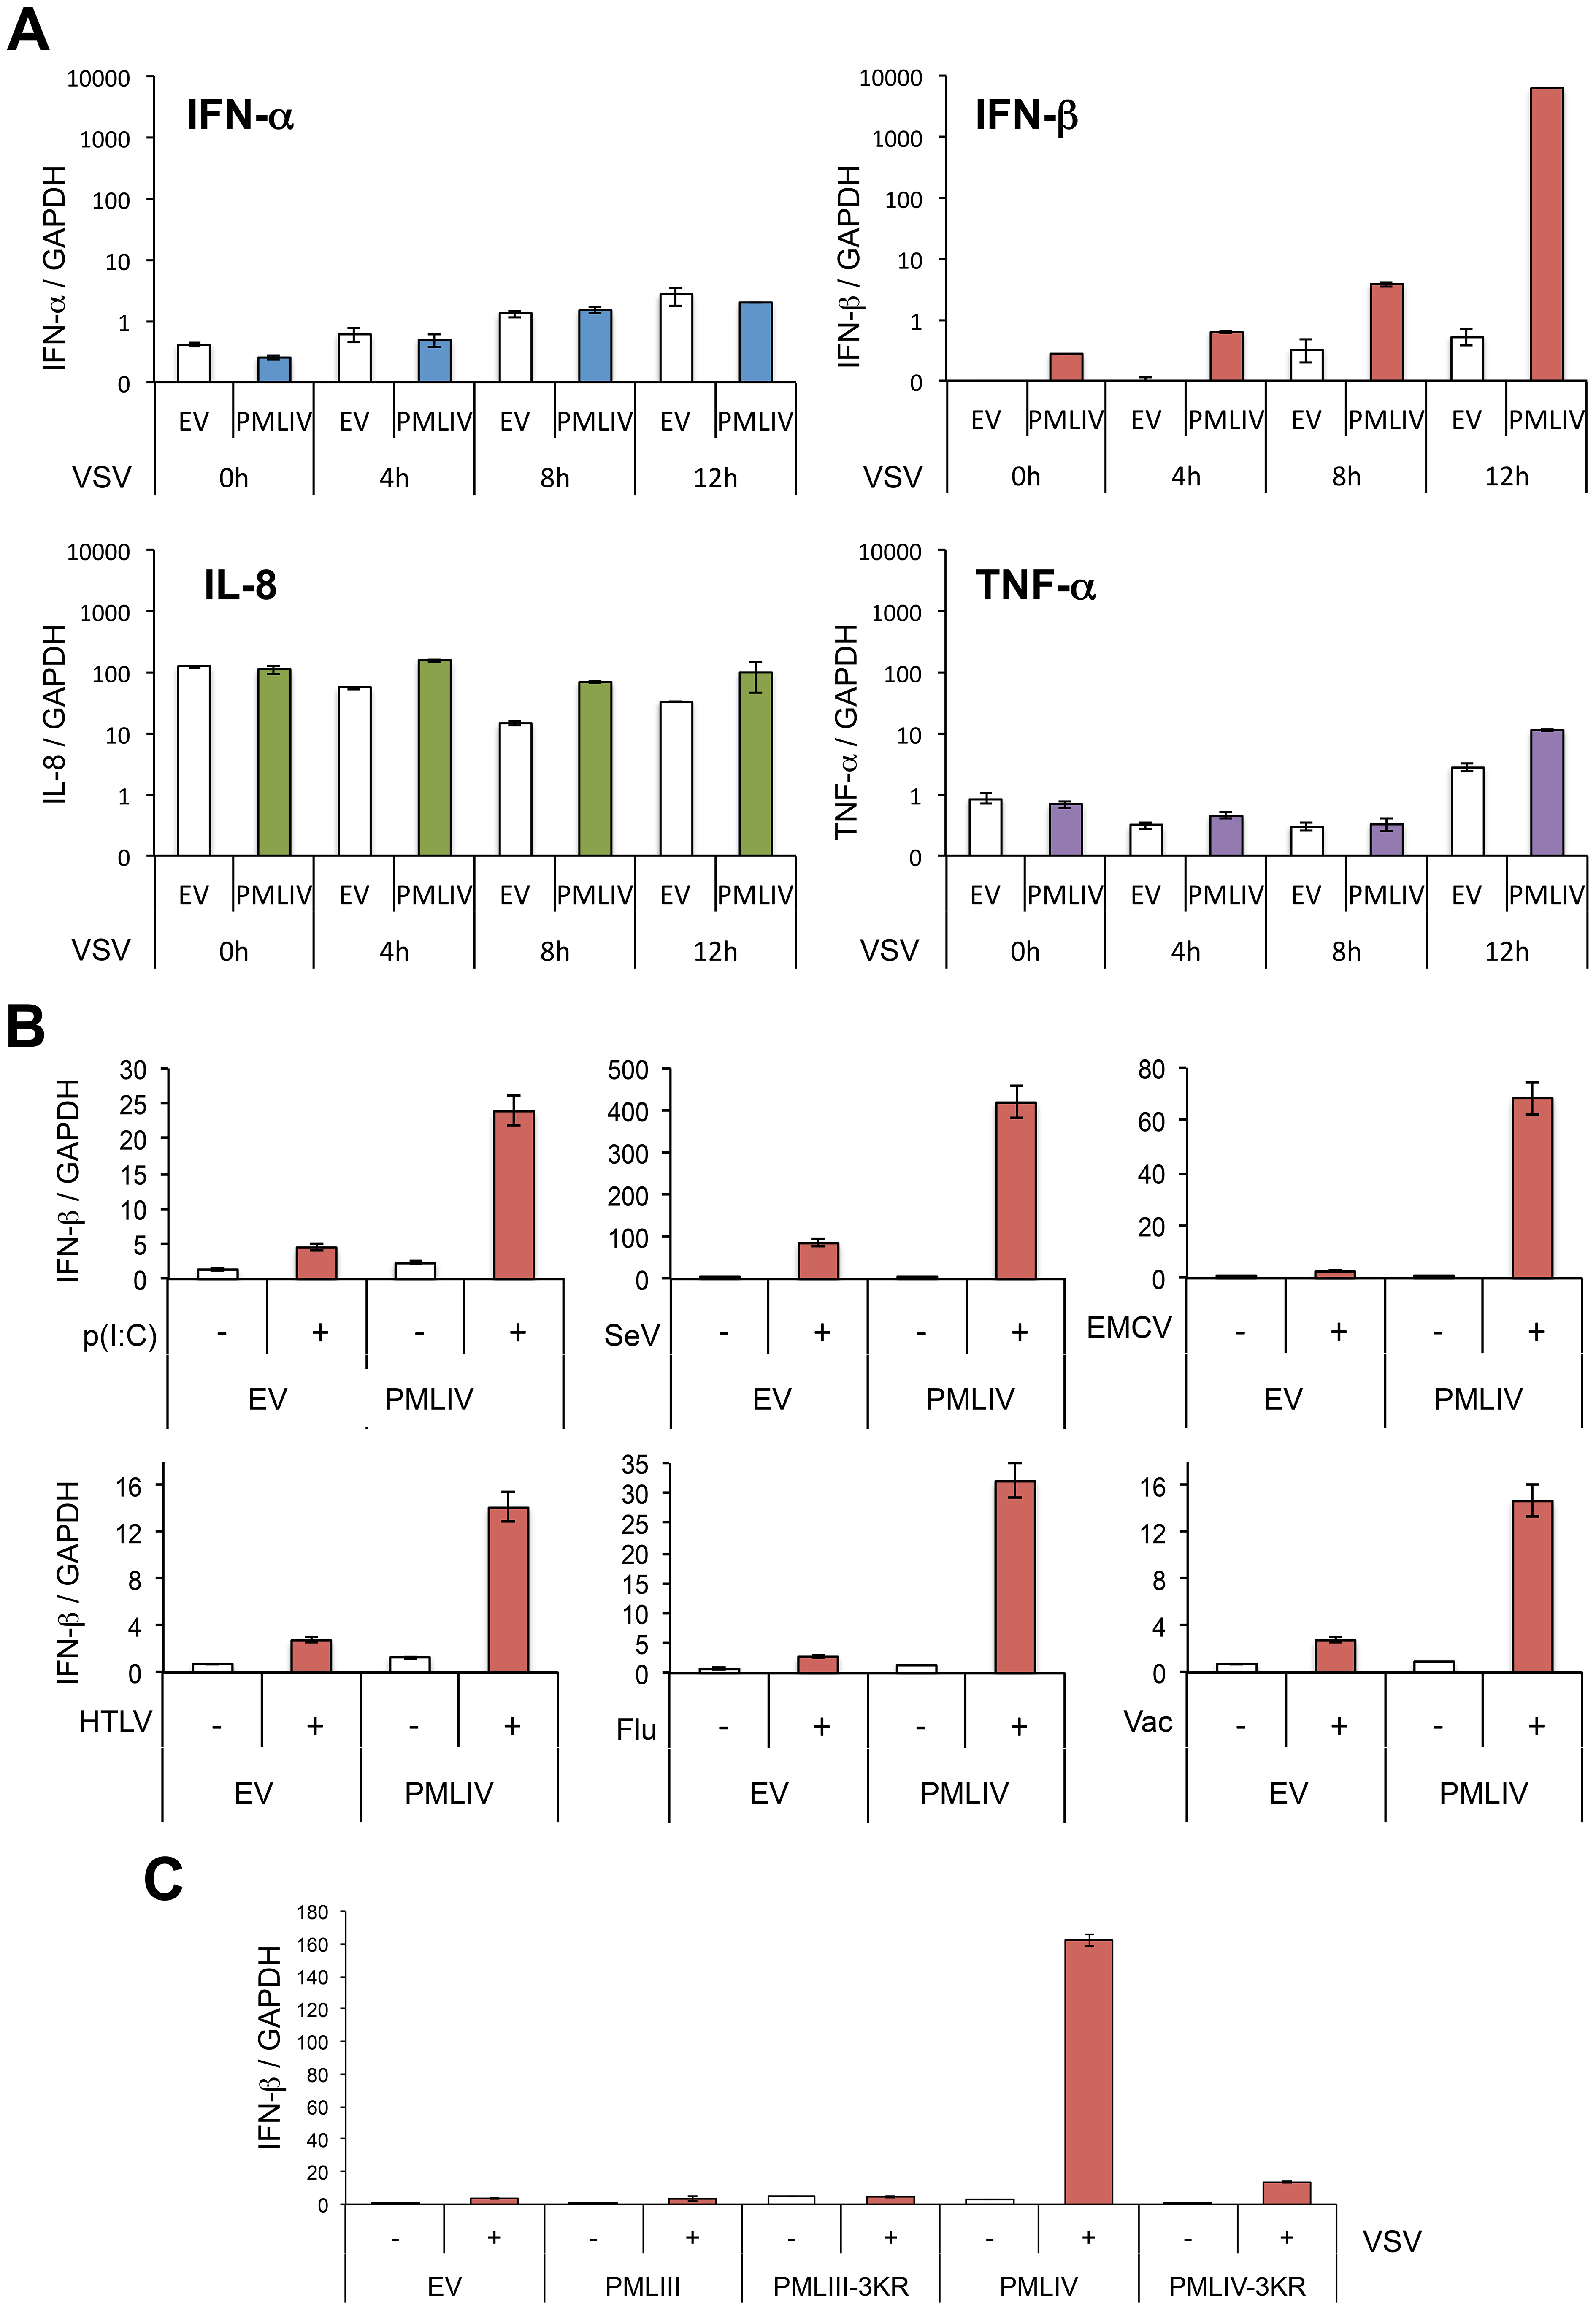 PMLIV positively regulates IFN-β synthesis.